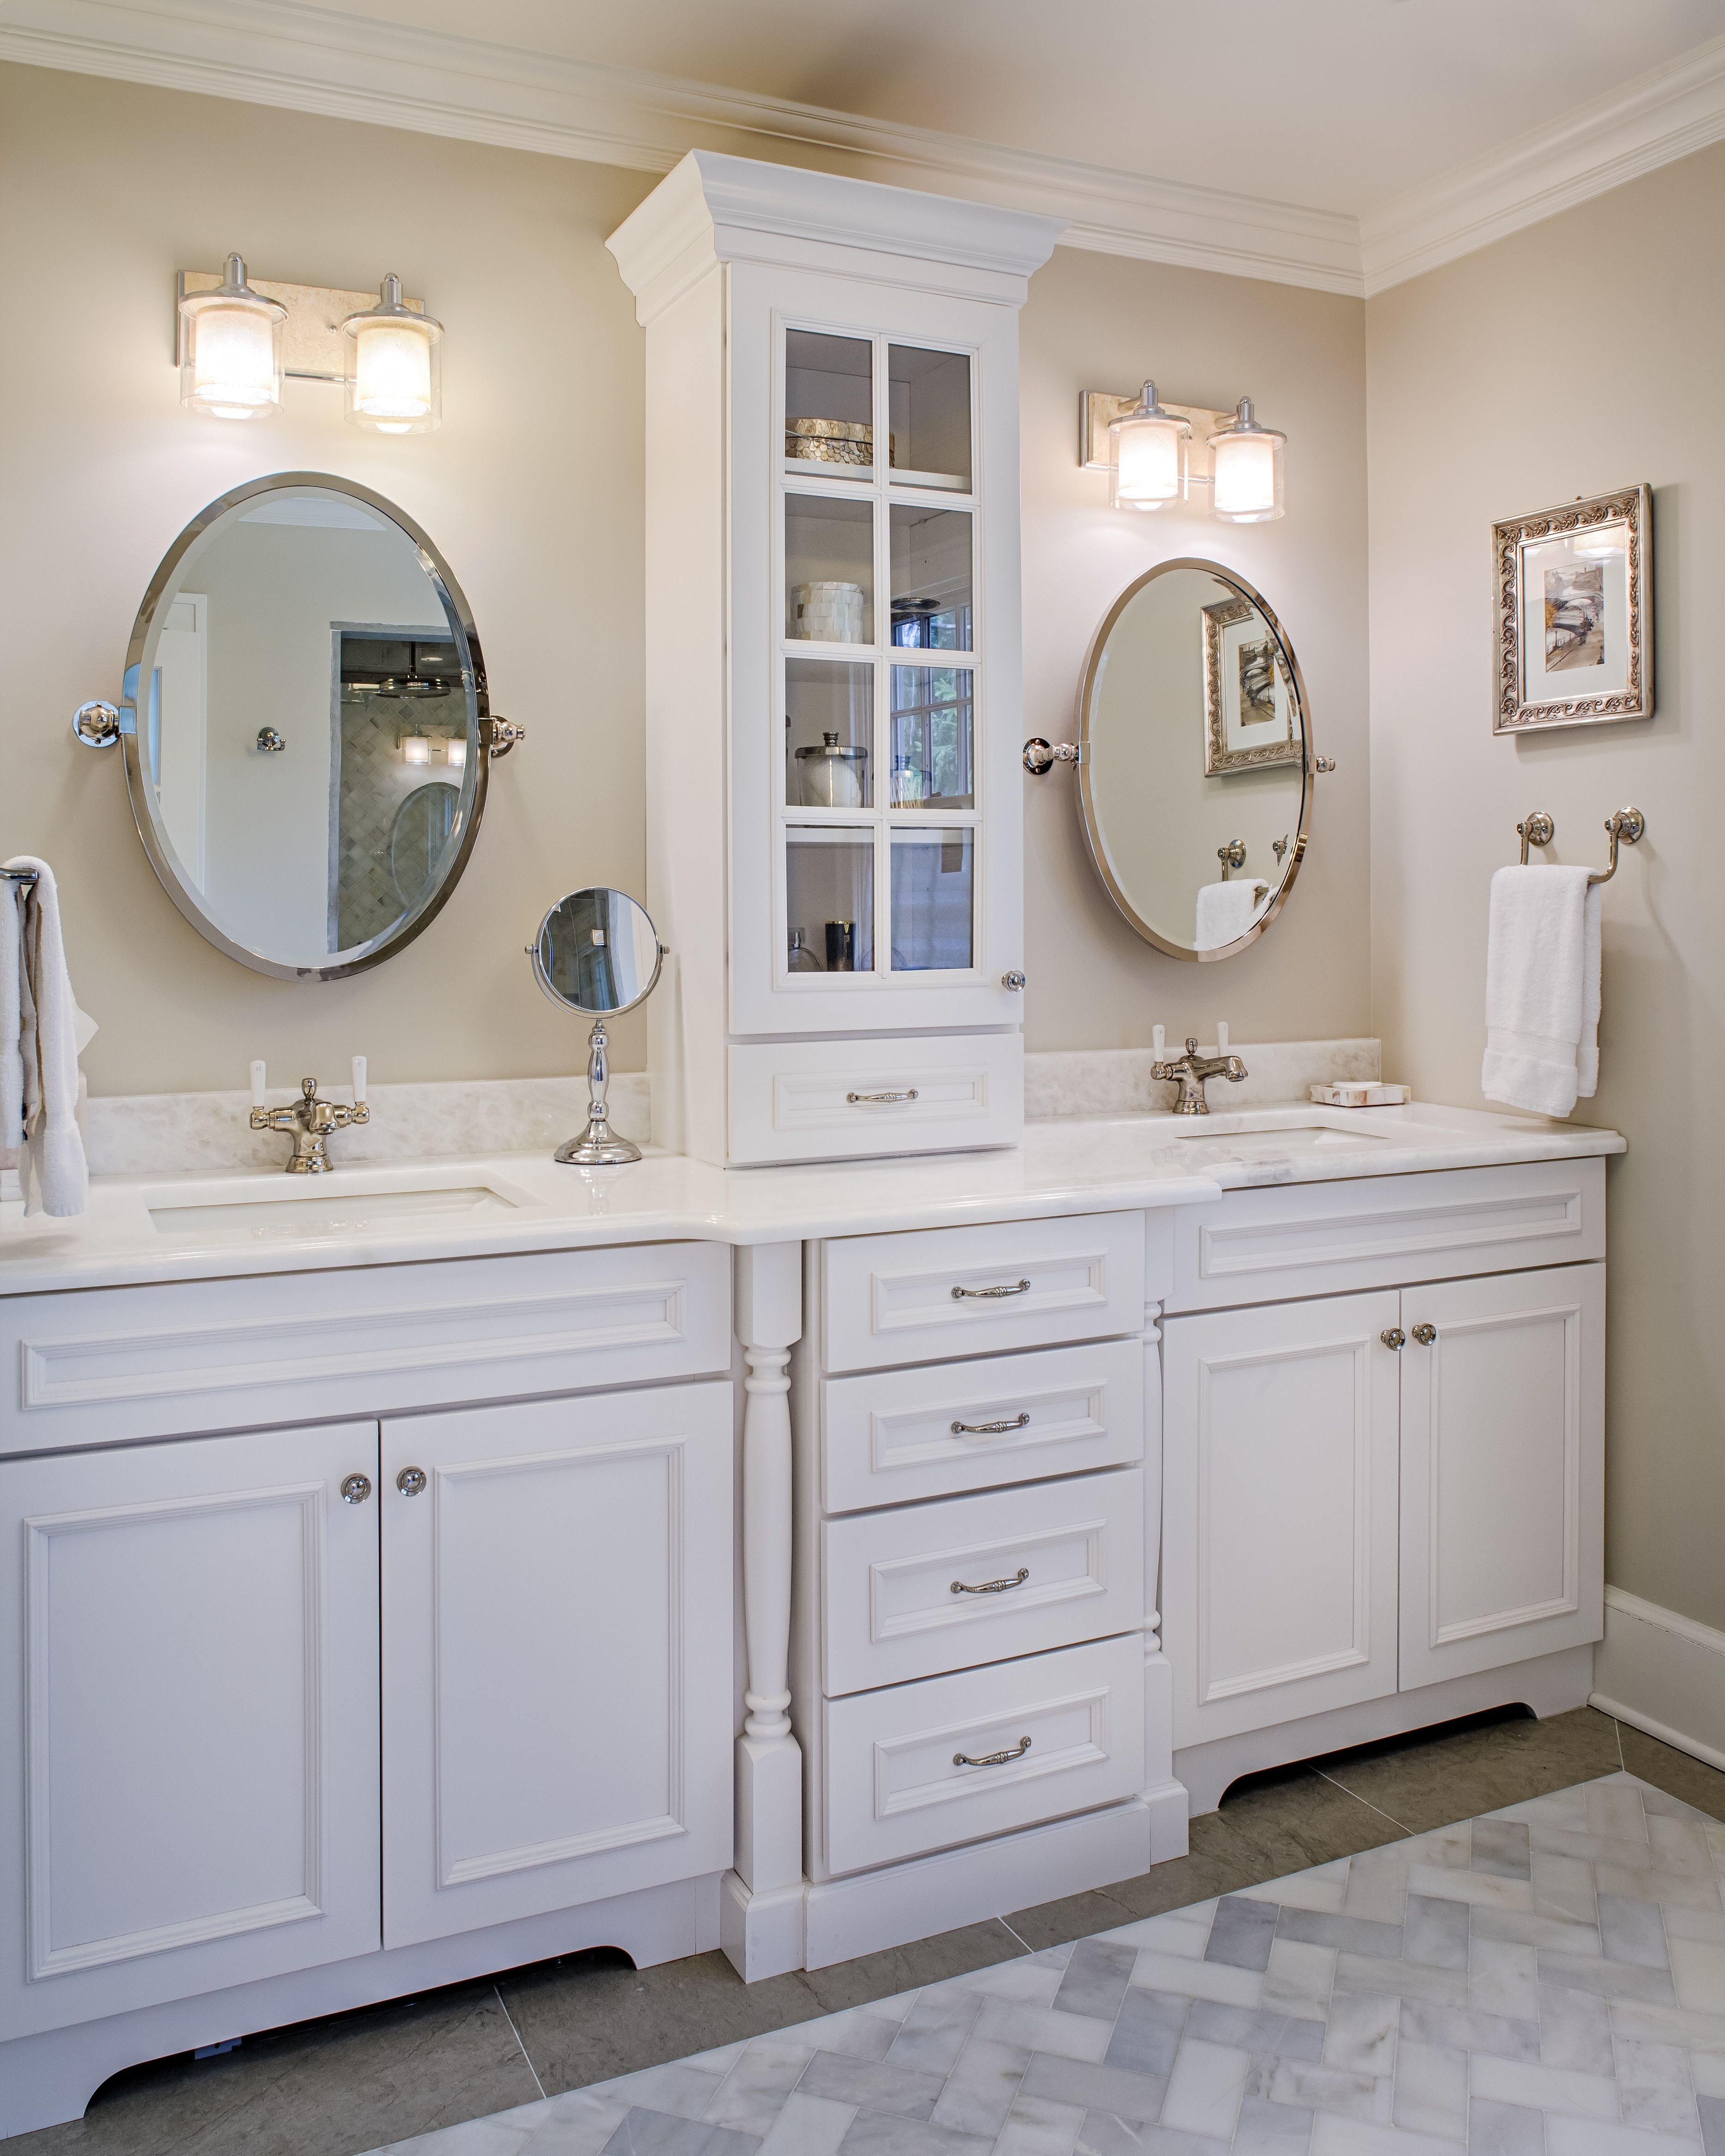 Master Bathroom Renovation With Tower And Double Vanity Tap The Link Now To See Where The World